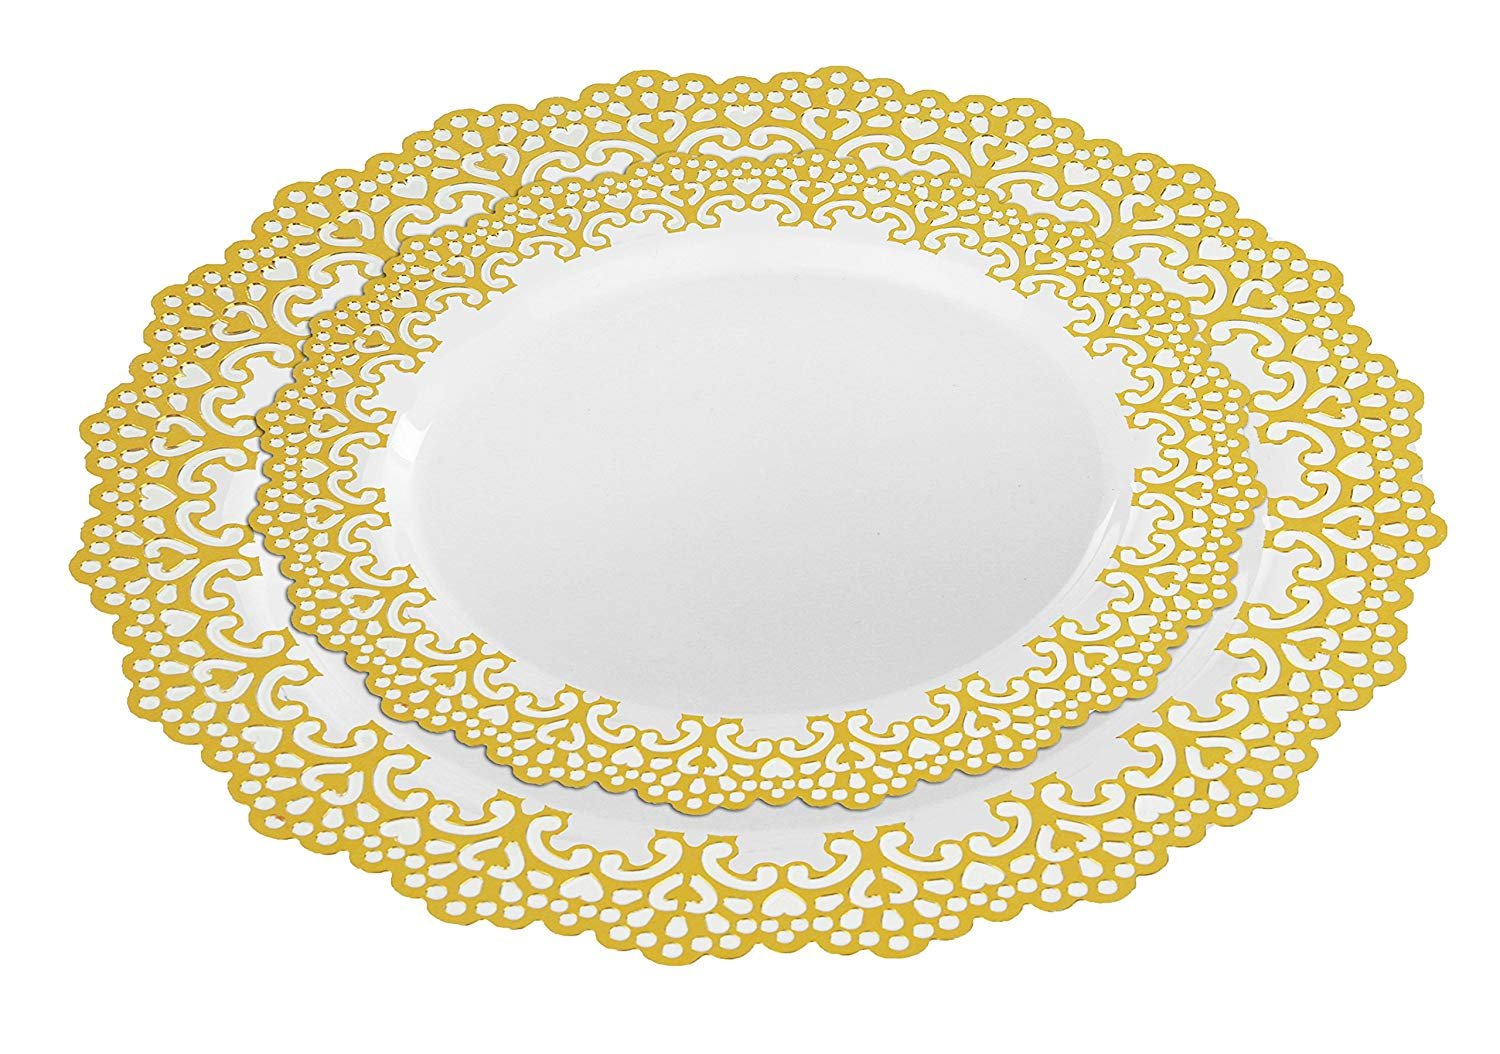 160 Piece (80 Guest) Disposable Plastic Plates, Hard and Reusable, Real China Look - Party Package Set - Includes 10'' inch Dinner Plates and 7.5'' inch Salad/Dessert Plates (Gold, 160 Piece Bulk Set)